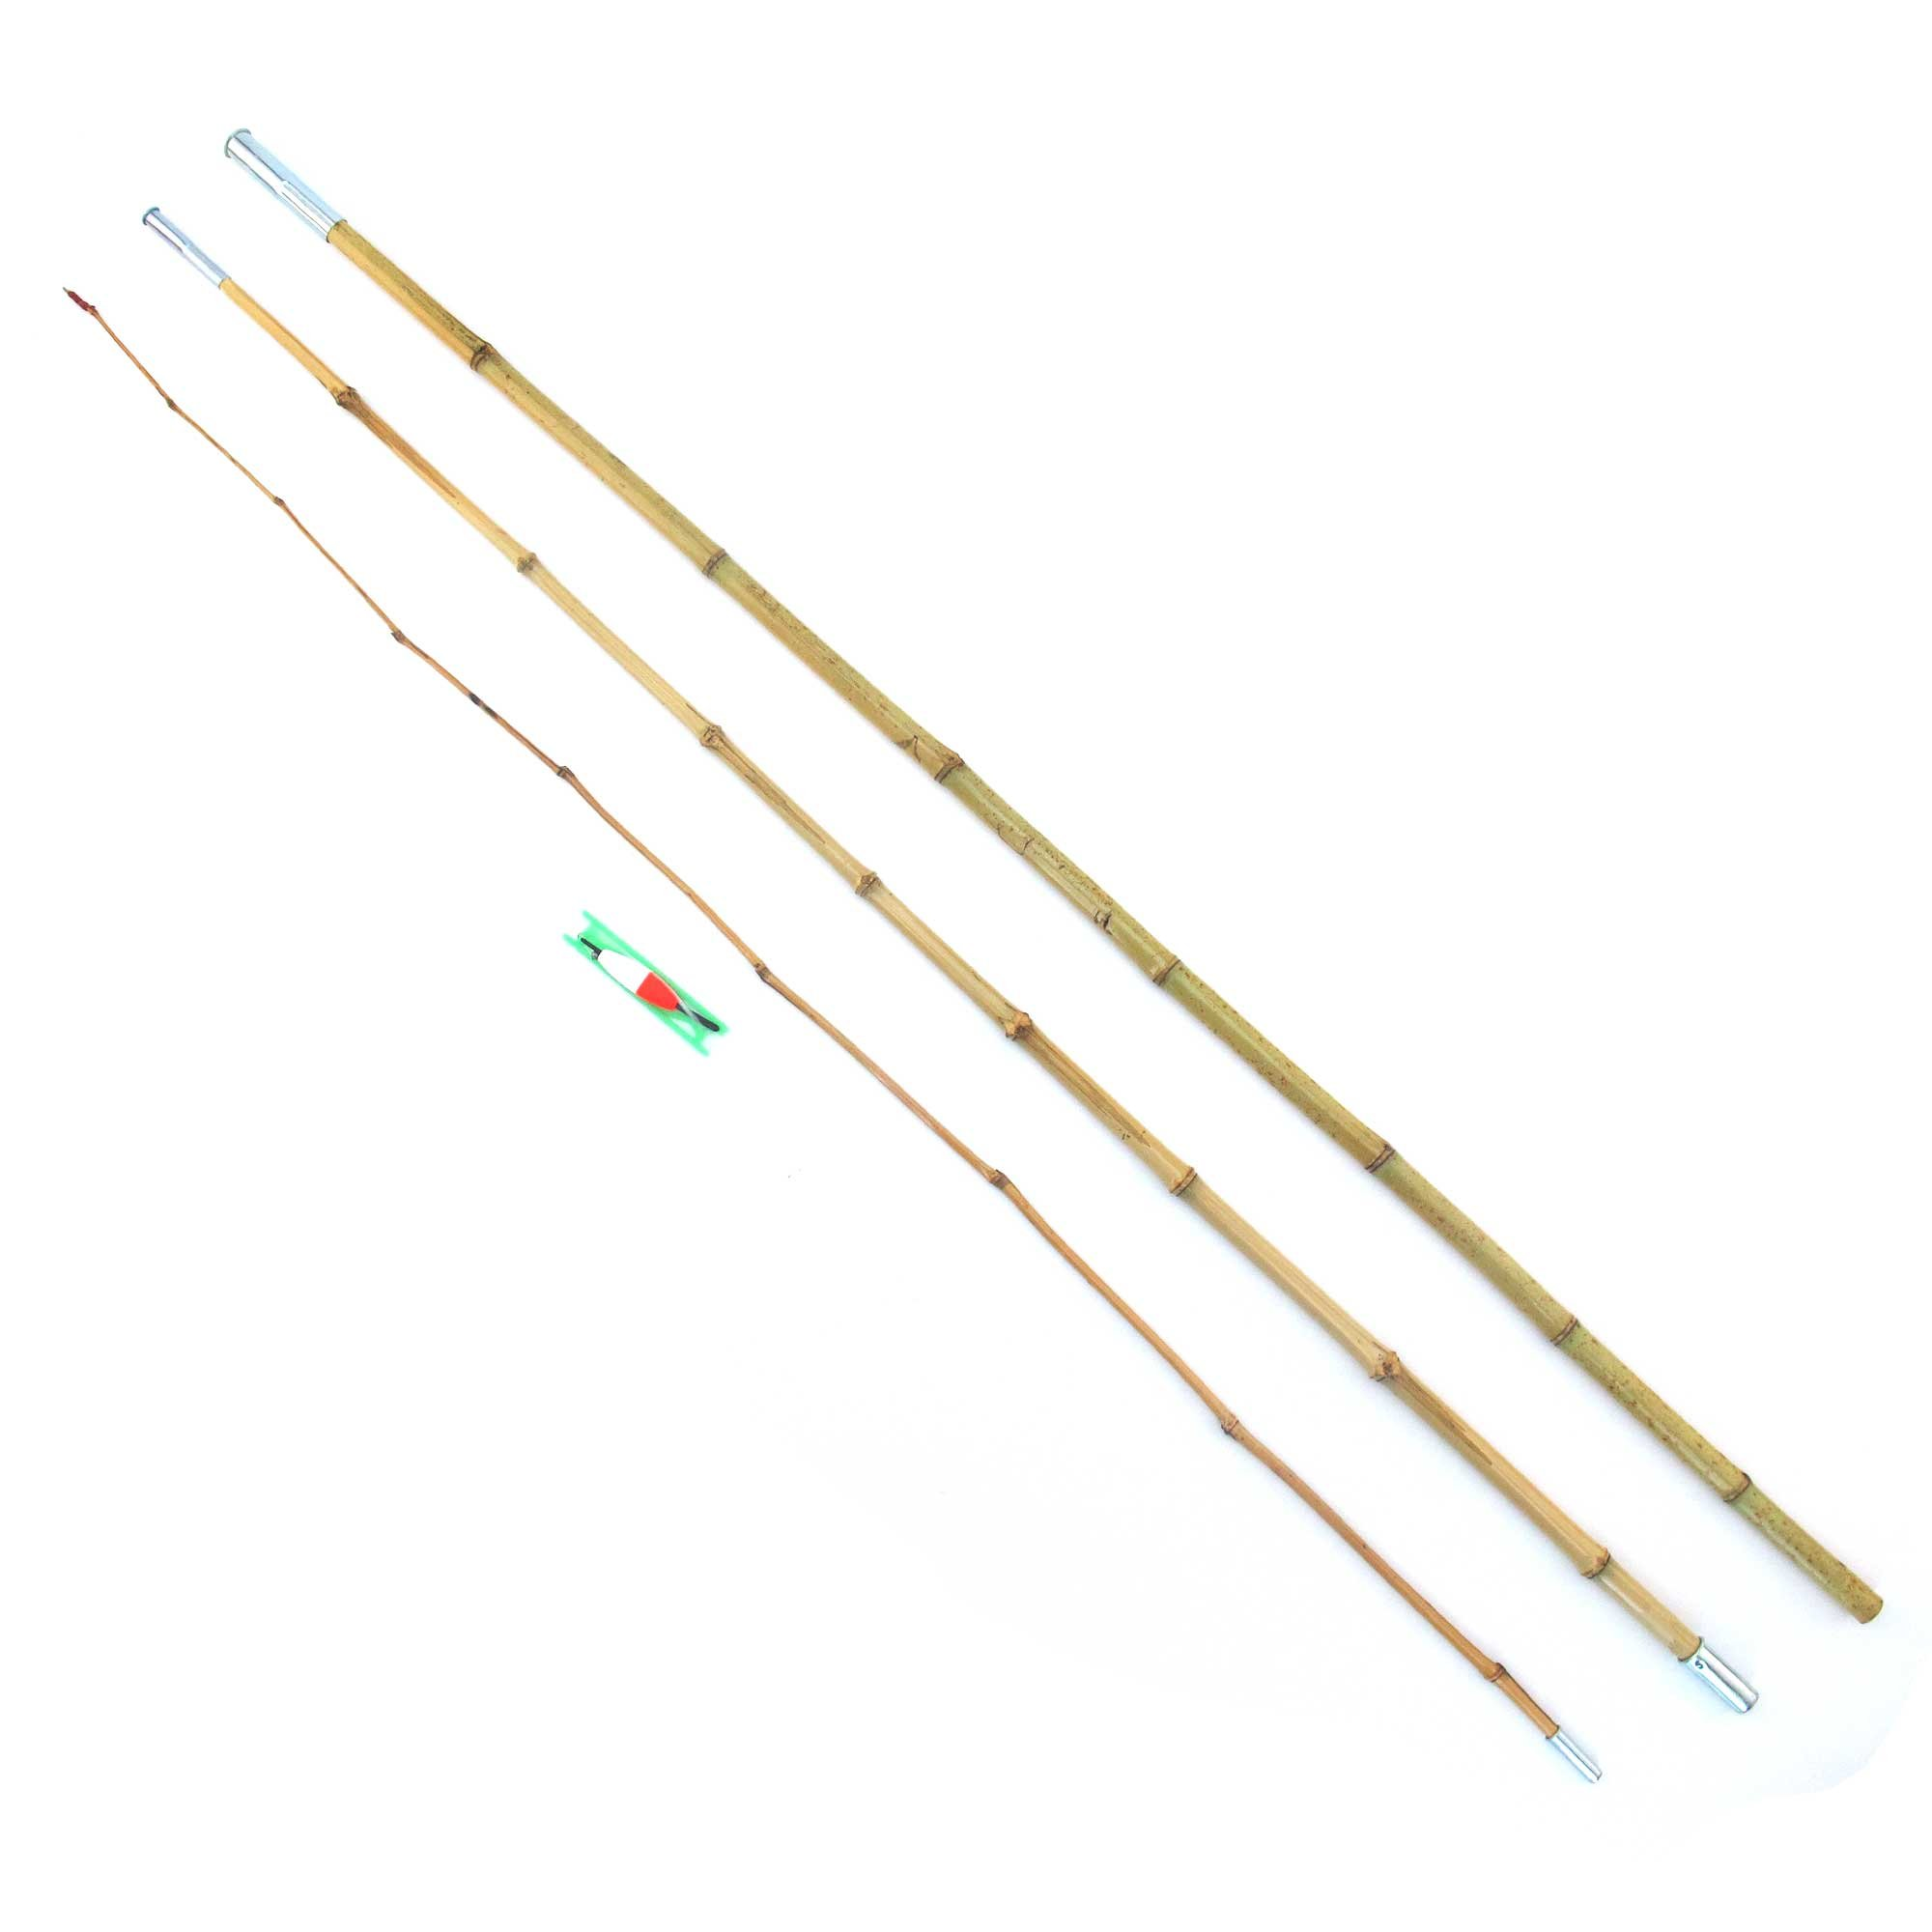 BambooMN 11.5 Ft 3 Piece Natural Bamboo Vintage Cane Fishing Pole with Bobber, Hook, Line and Sinker, 3 Sets by BambooMN (Image #2)